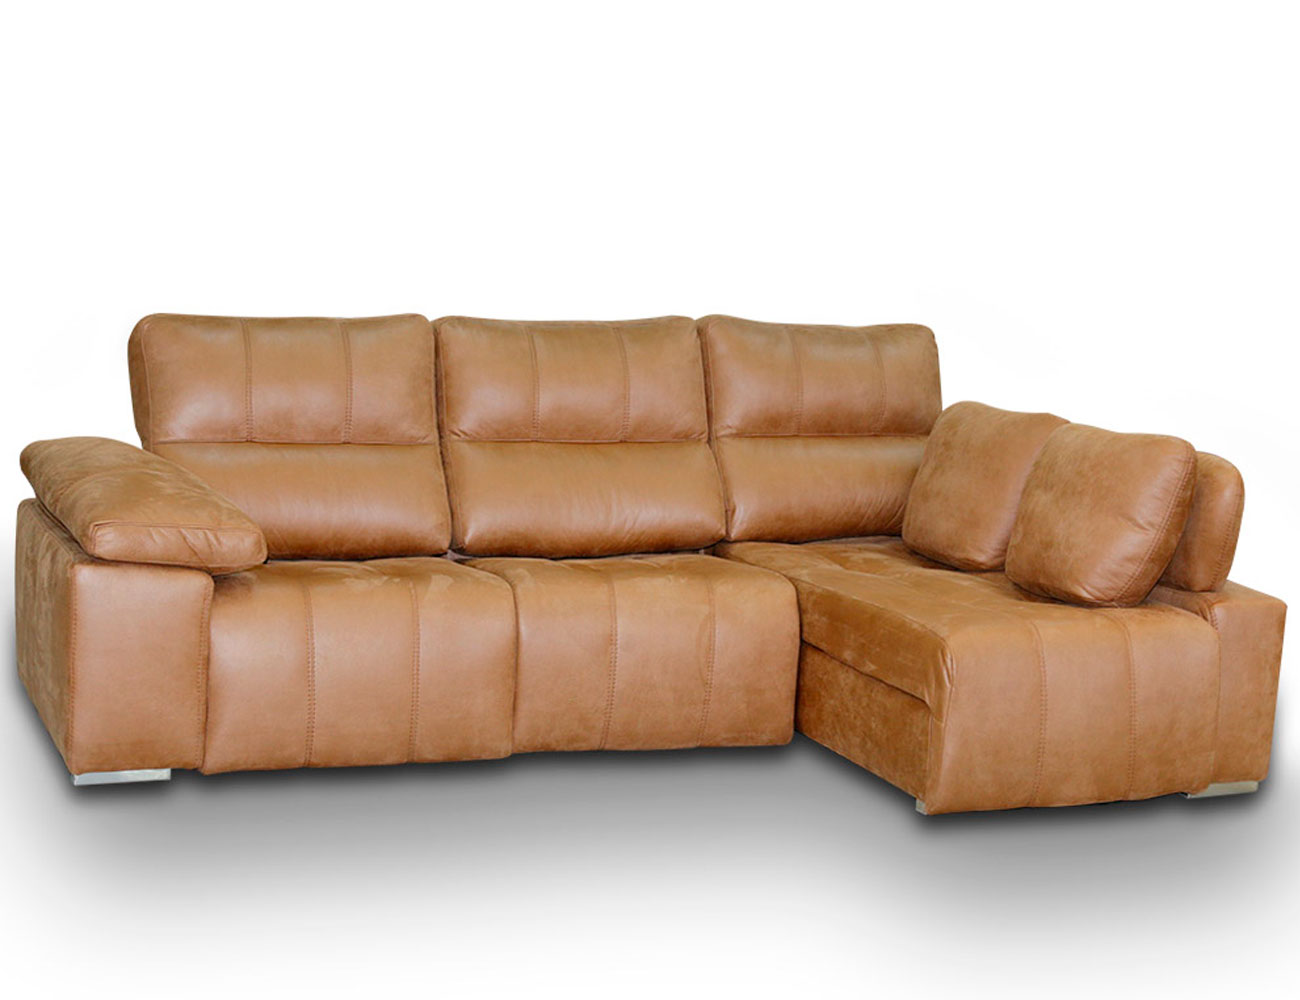 Sofa chaiselongue relax 2 motores anti manchas49